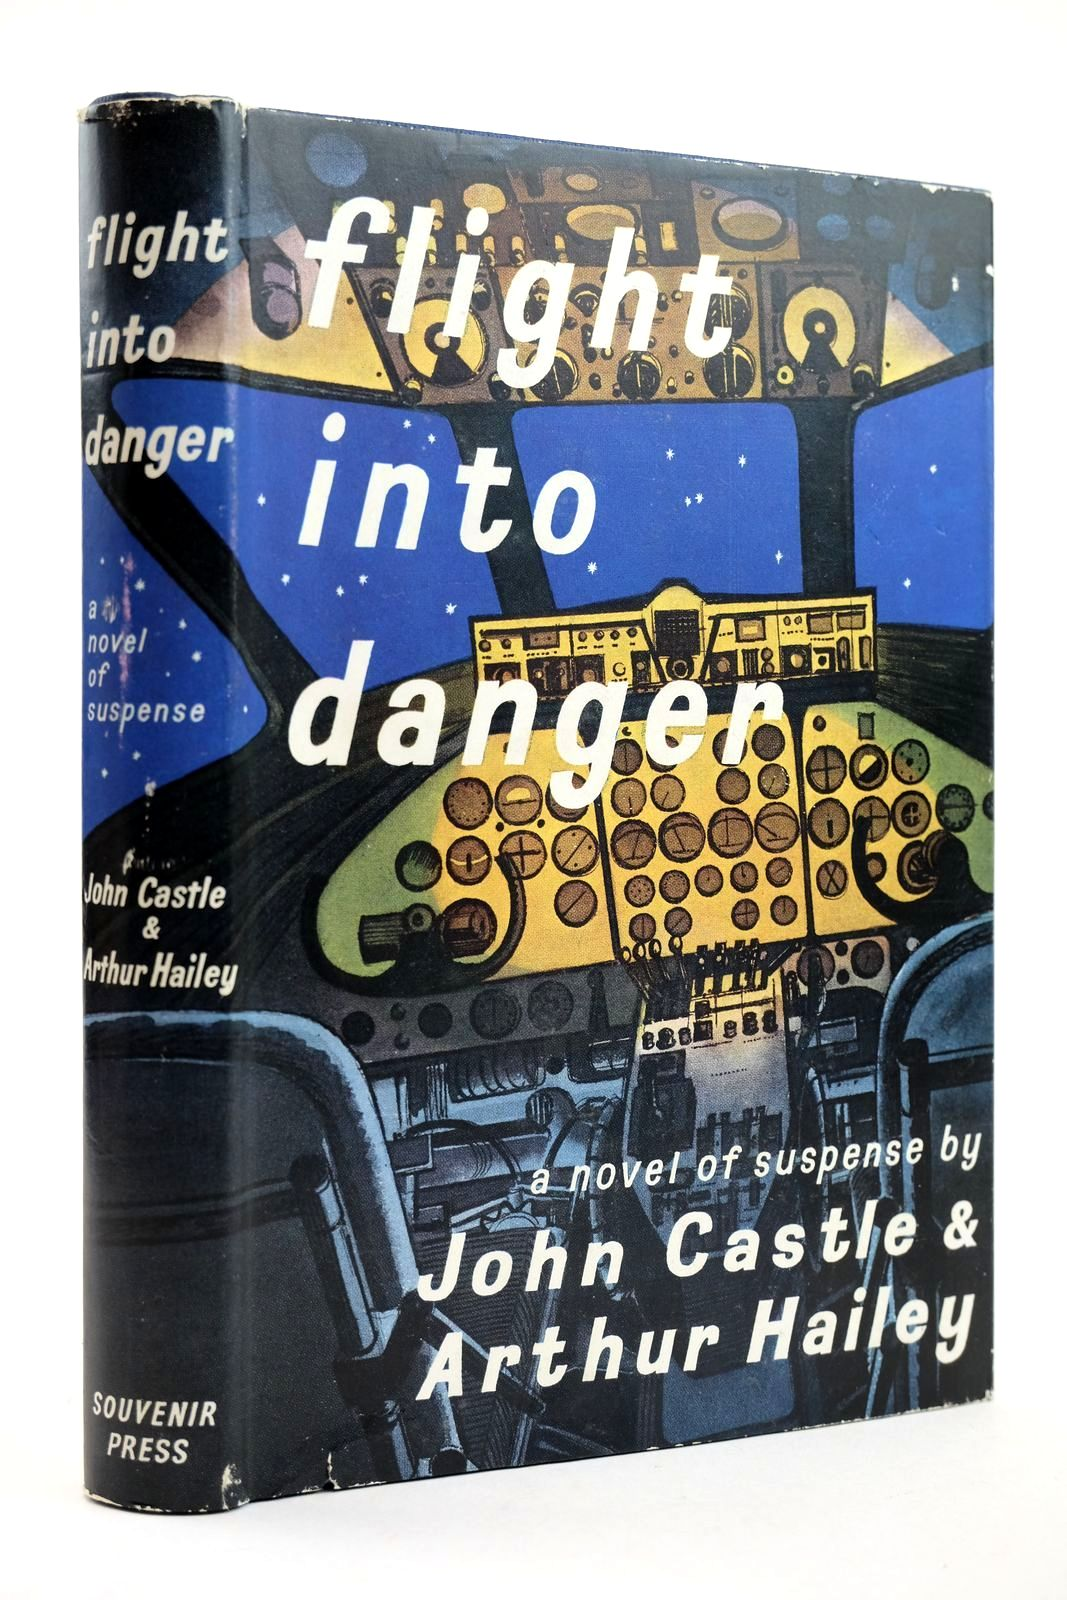 Photo of FLIGHT INTO DANGER written by Castle, John Hailey, Arthur published by Souvenir Press (STOCK CODE: 2132179)  for sale by Stella & Rose's Books